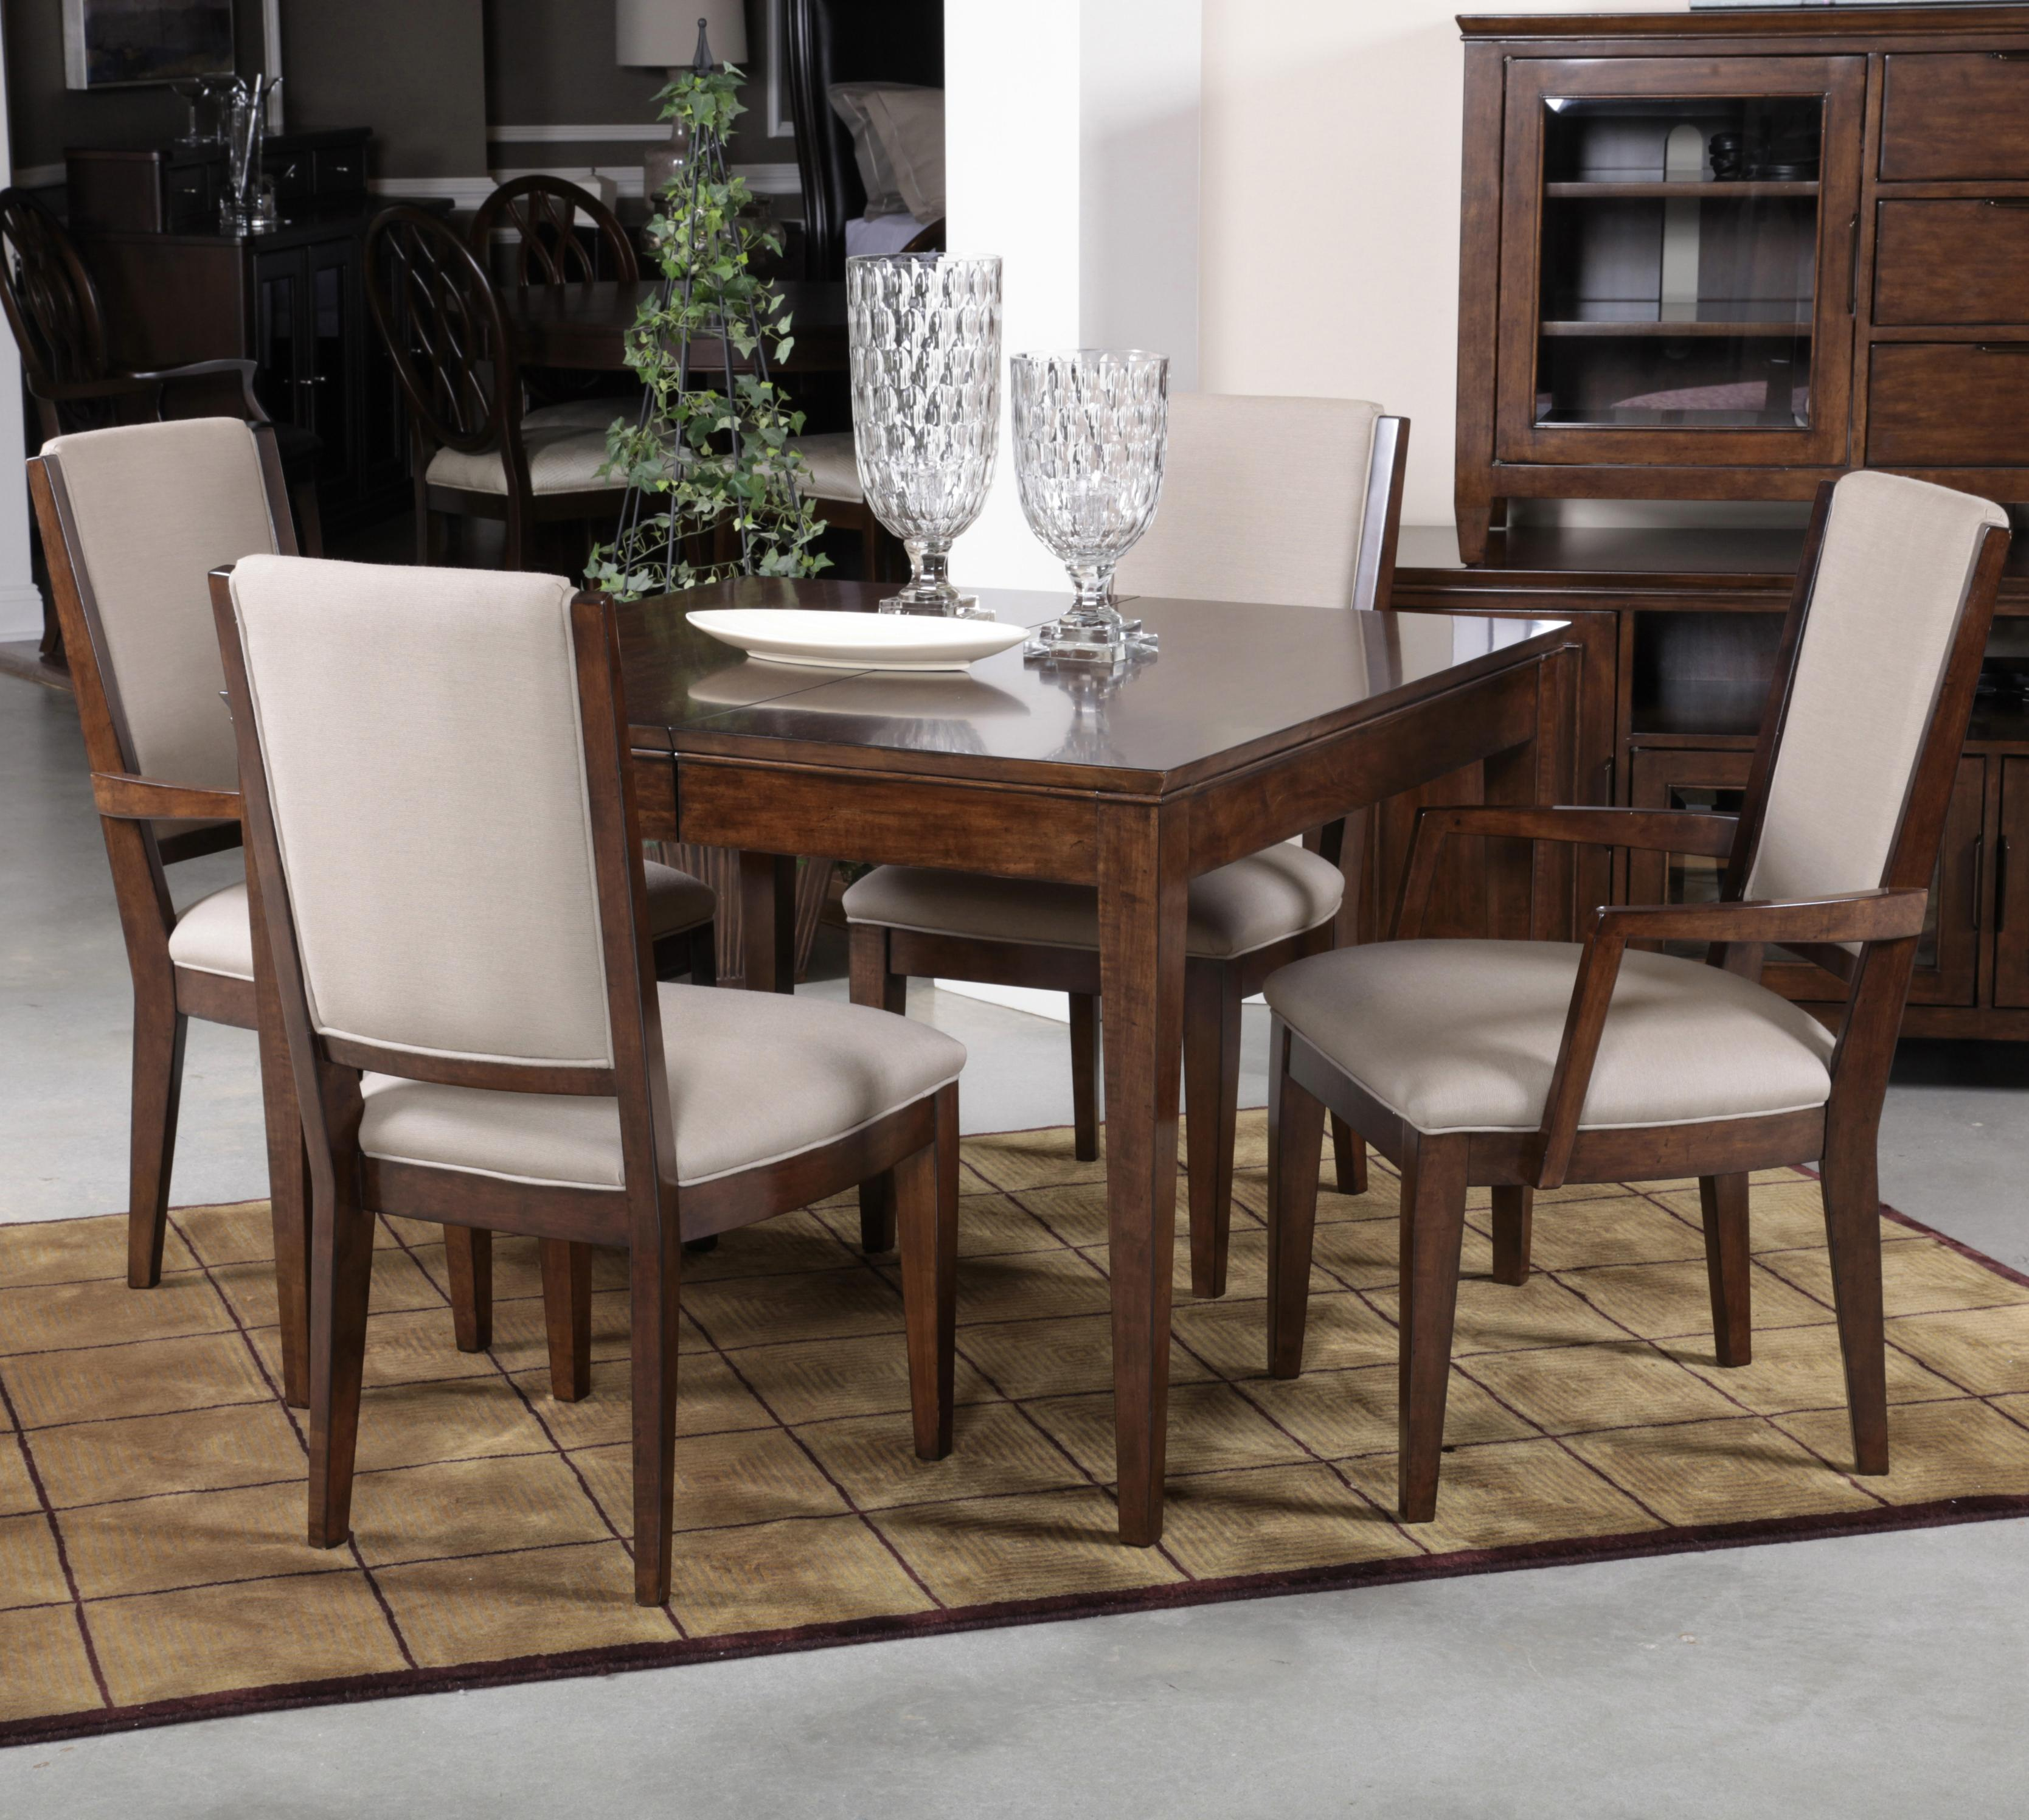 Kincaid Dining Room Set: Kincaid Furniture Elise Five Piece Dining Set With Upholstered Chairs